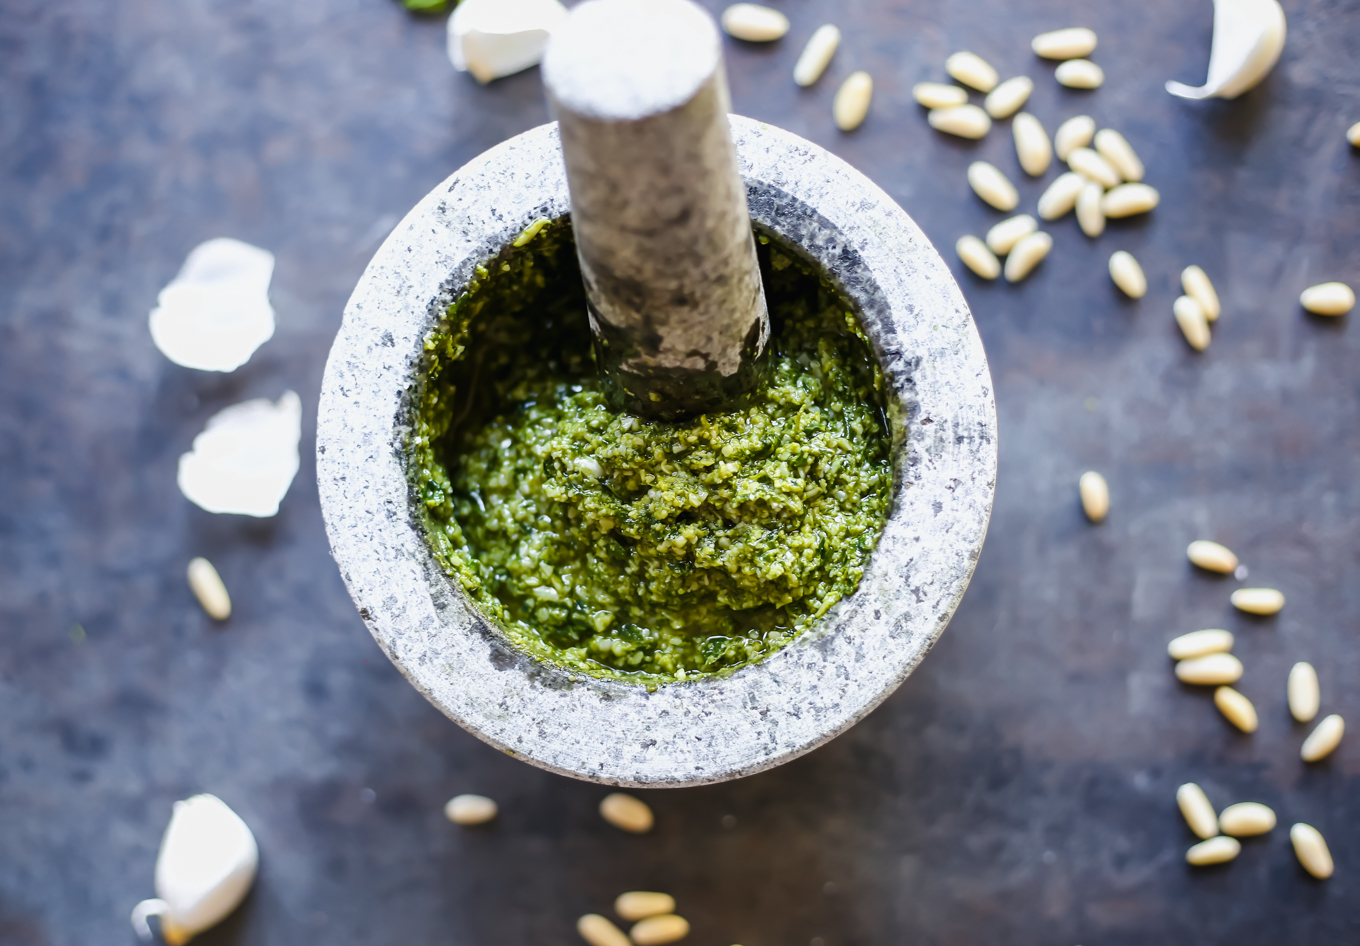 How to make Mortar and Pestle Pesto